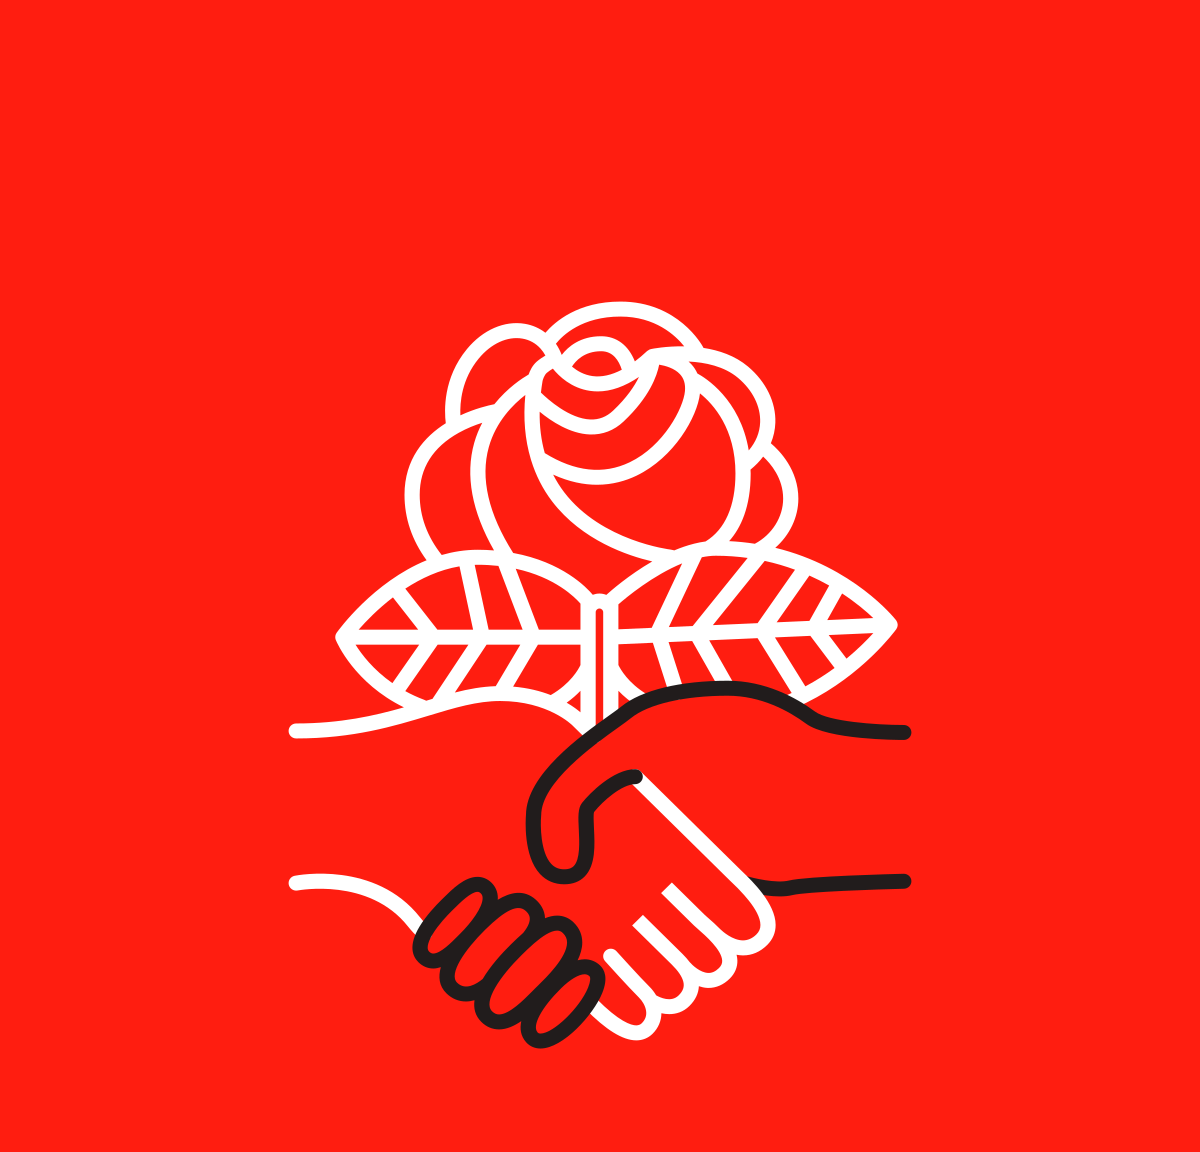 Logo of the Democratic Socialists of America, outline of hands shaking against a rose